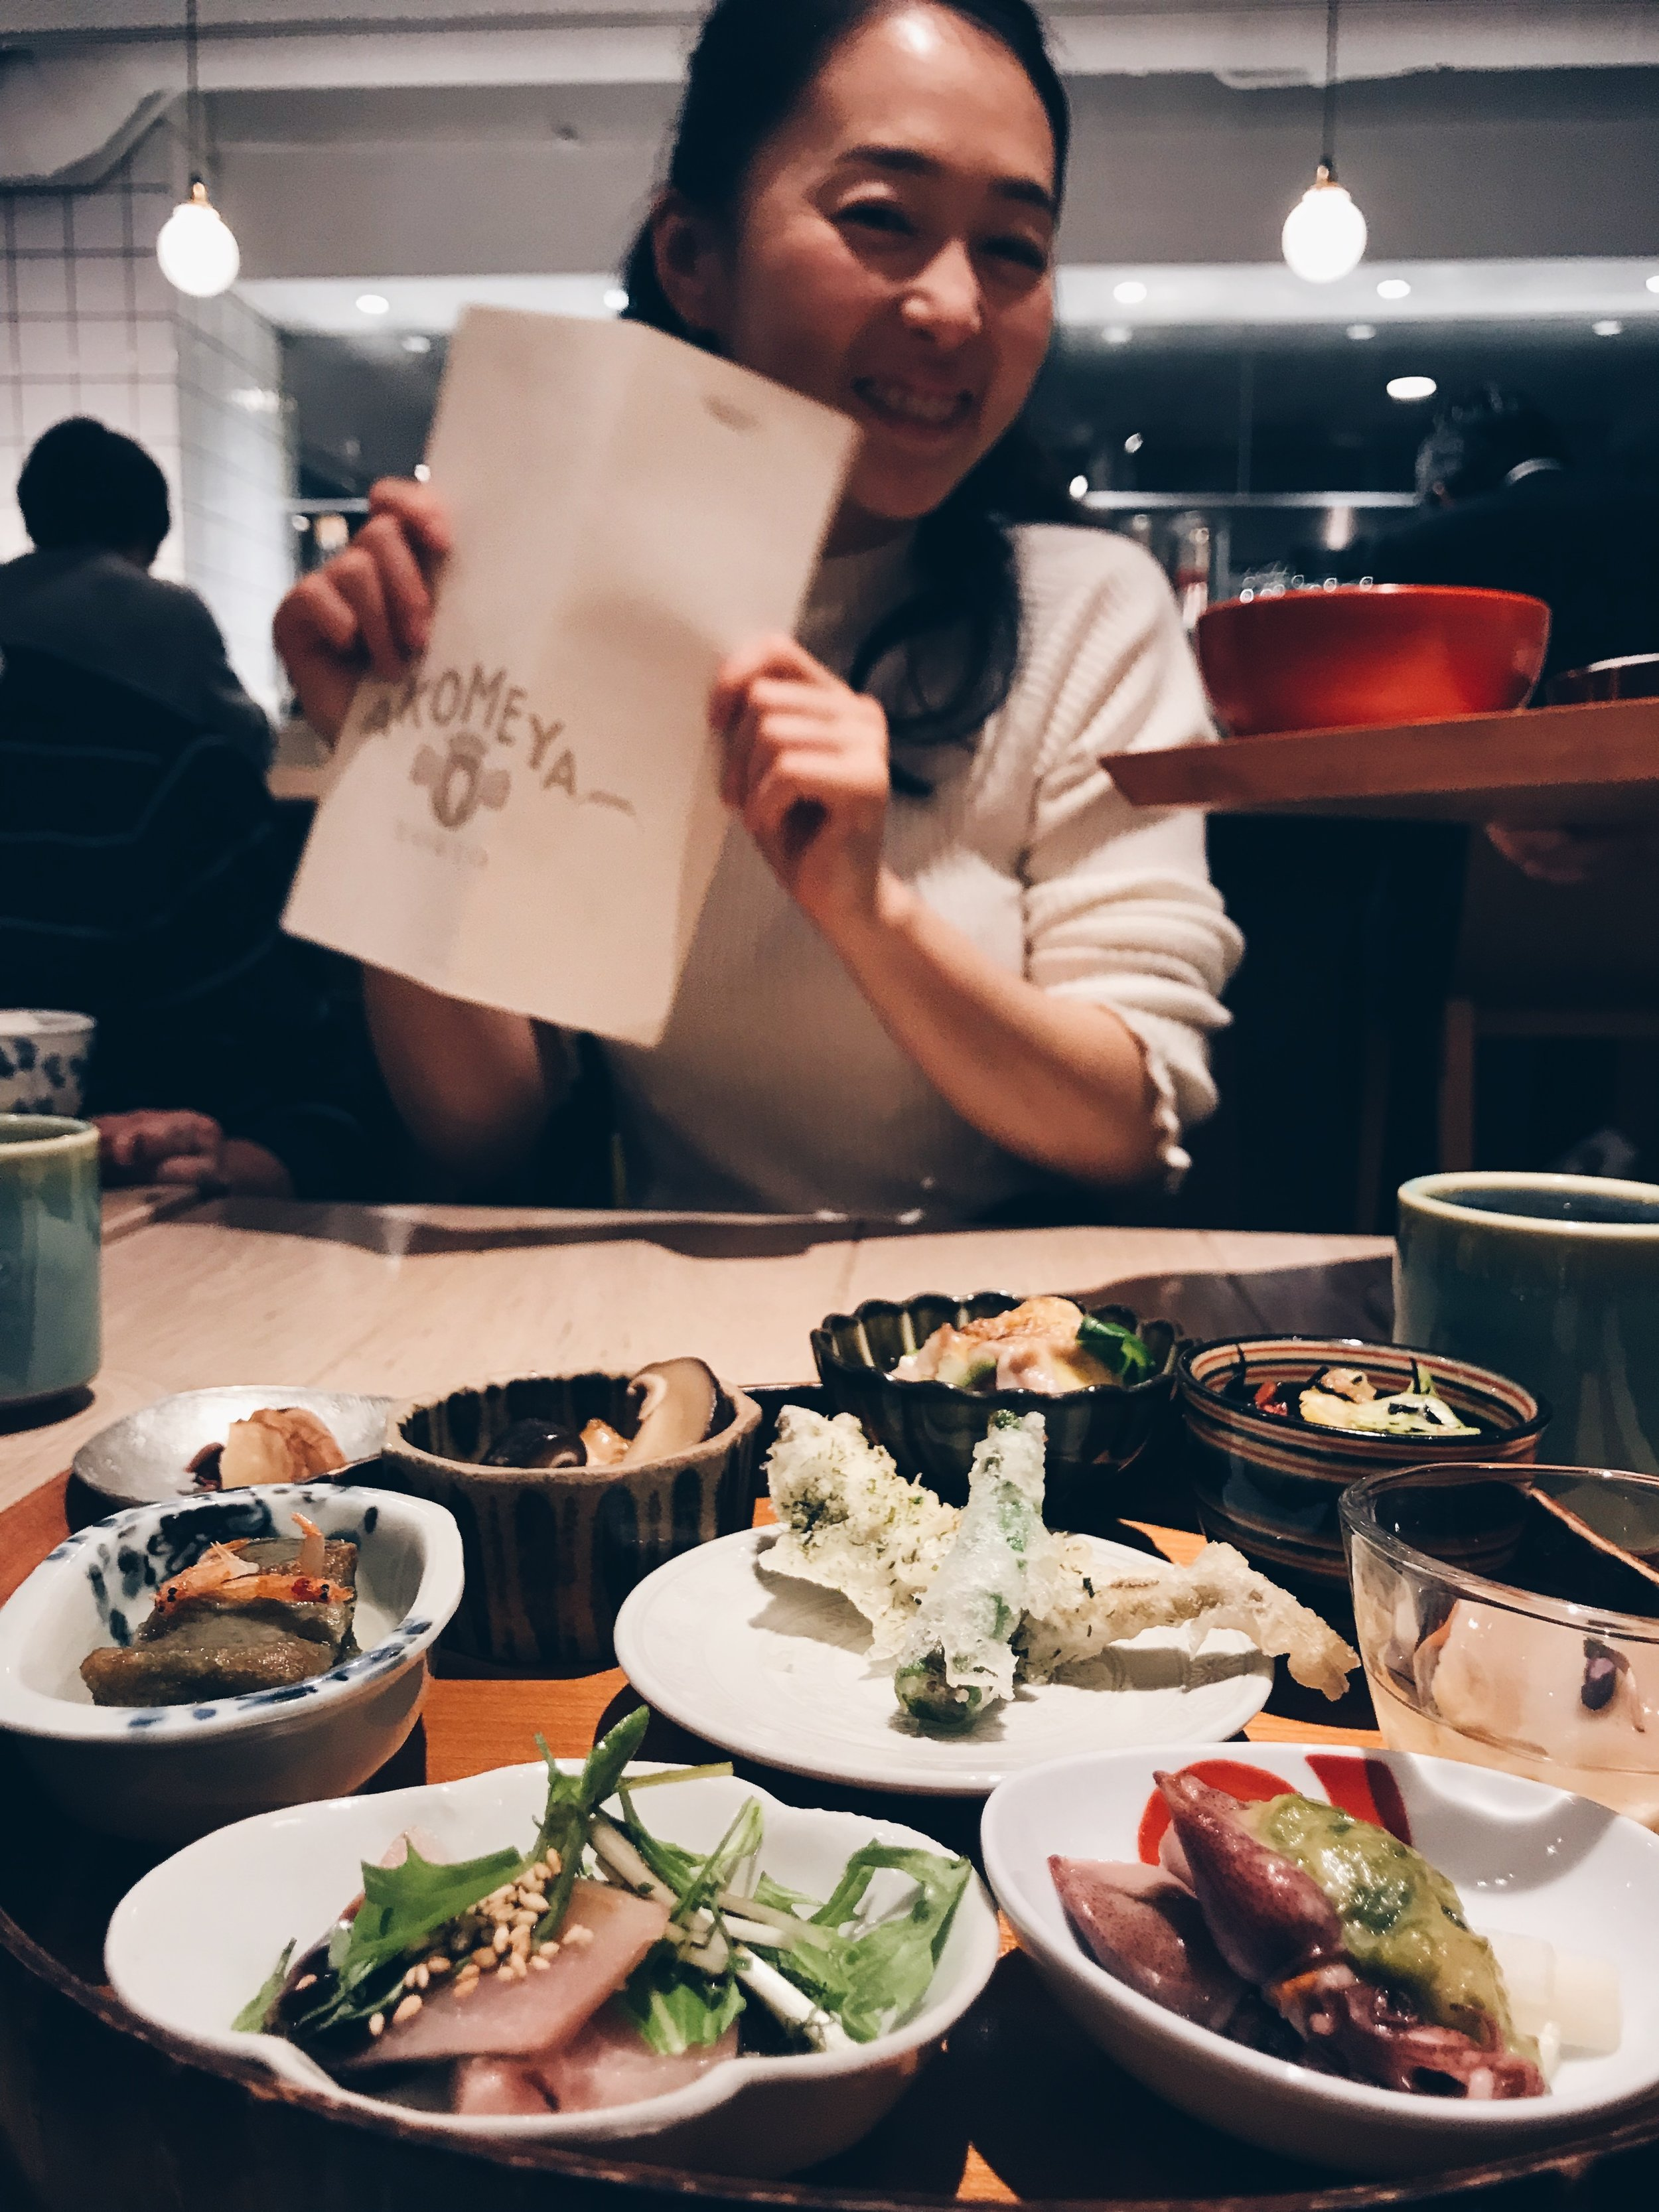 My old friend Eri from Tokyo (the cutest, sweetest human-being!) who recommended this gem